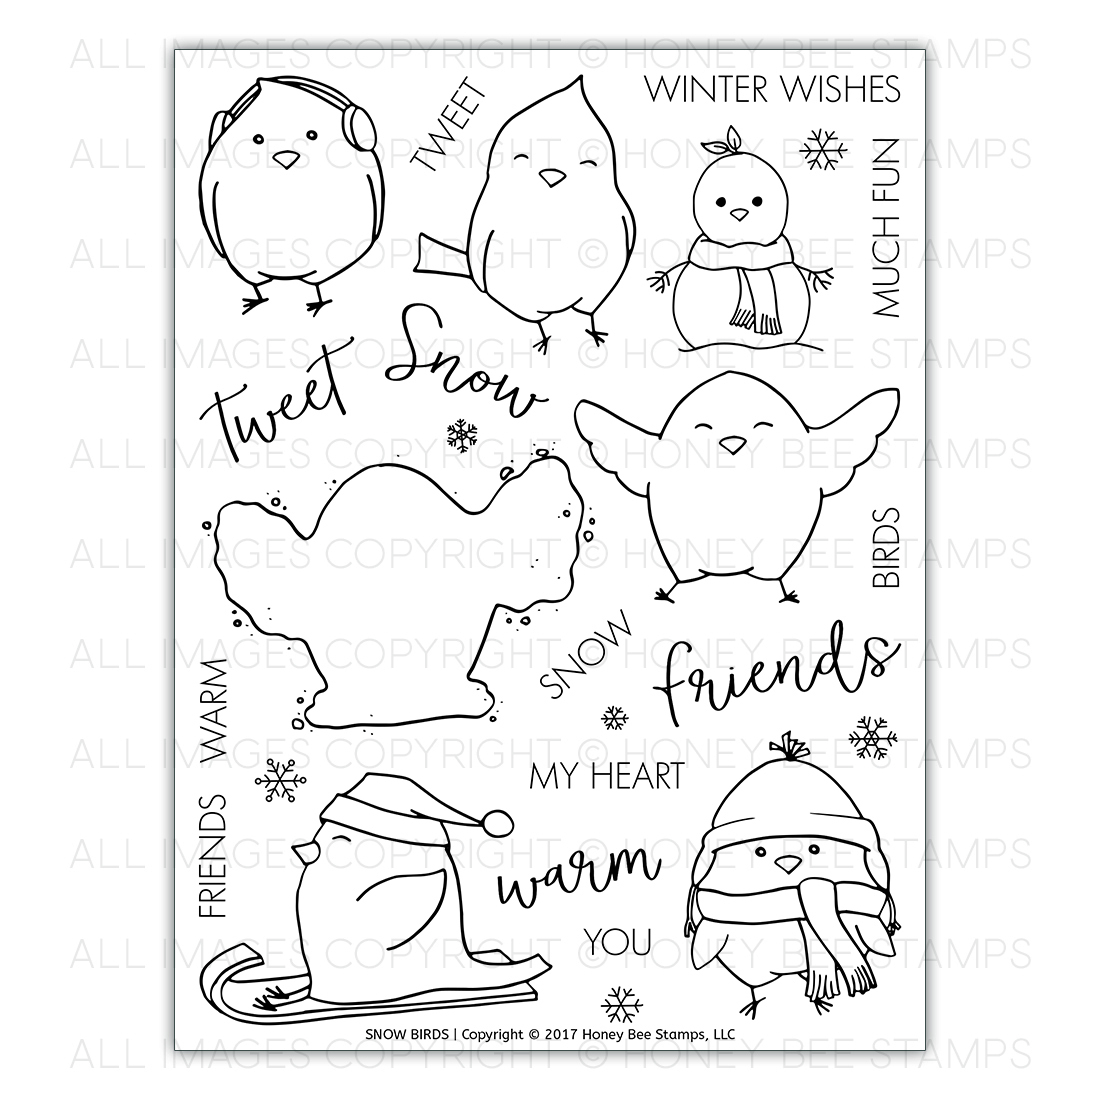 Honey Bee Stamps - Snow Birds | 6x8 Stamp Set